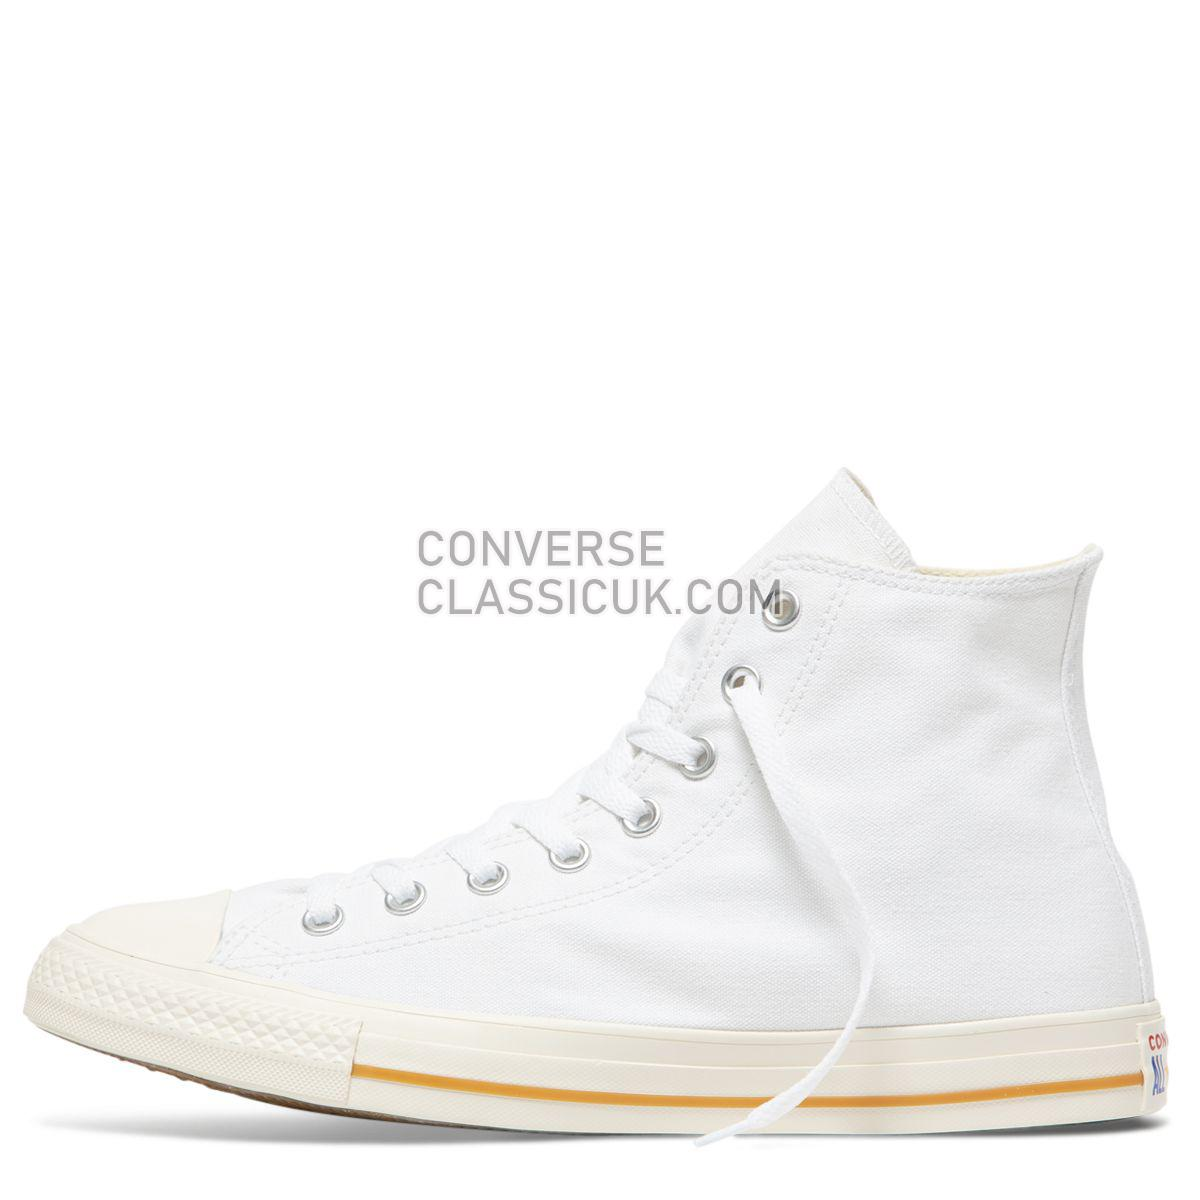 Converse Chuck Taylor All Star Cali Wash High Top White Mens Womens Unisex 165690 White/Egret/Egret Shoes